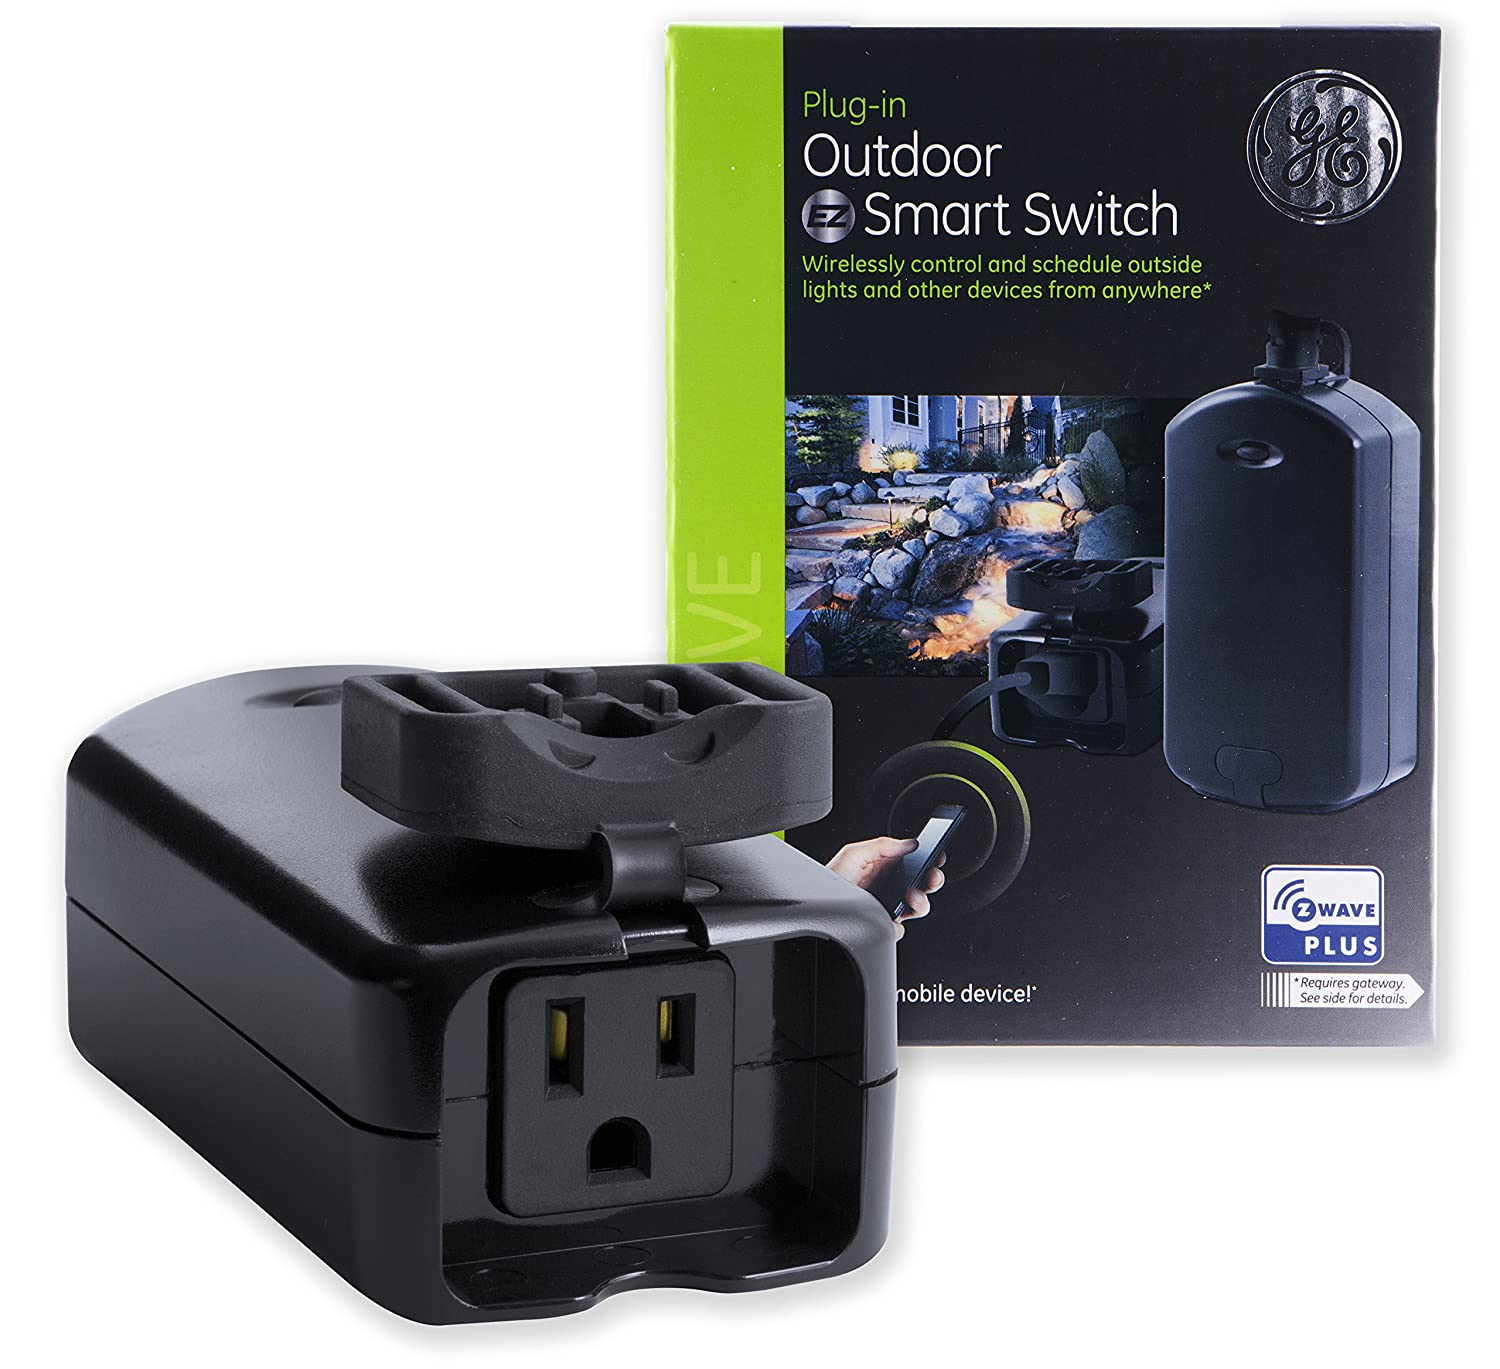 GE Enbrighten Z-Wave Plus Outdoor Smart Plug Switch, 1 On/Off Outlet, Weather-Resistant, Built-in Repeater/Range Extender, Zwave Hub Required, Works with SmartThings, Wink, Alexa, 14284, BLACK